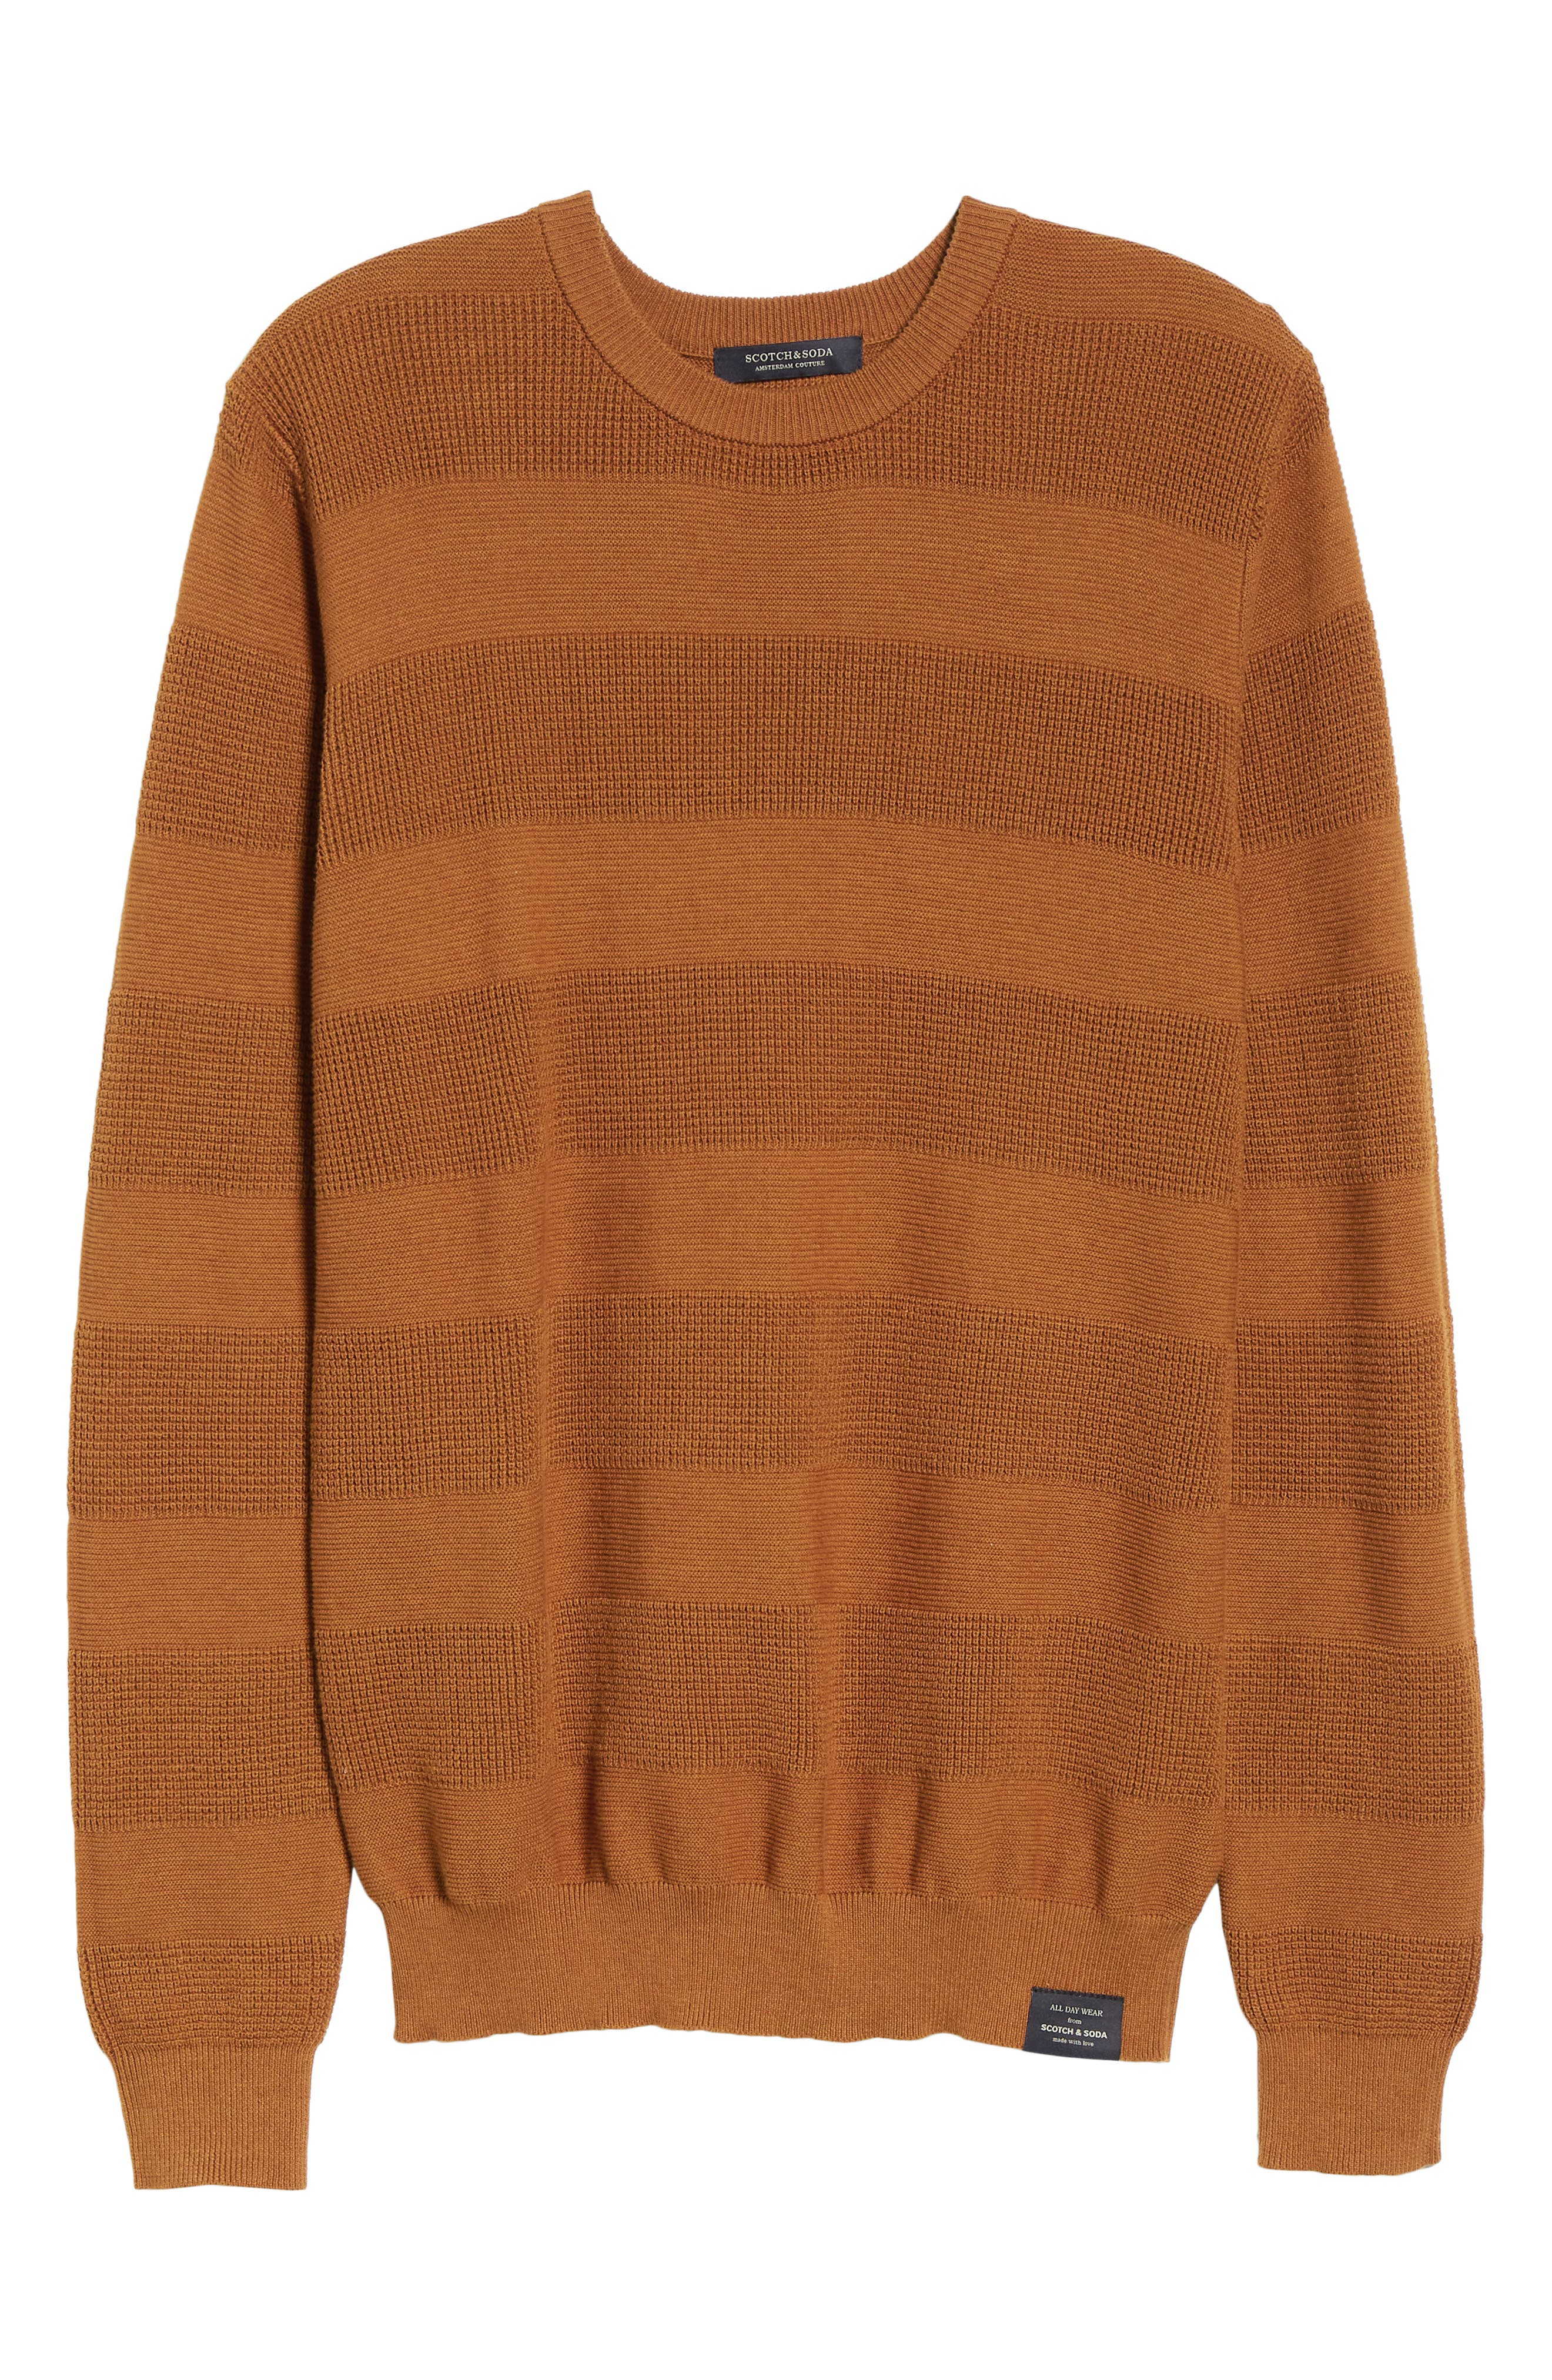 Crewneck Sweater,                             Alternate thumbnail 6, color,                             800